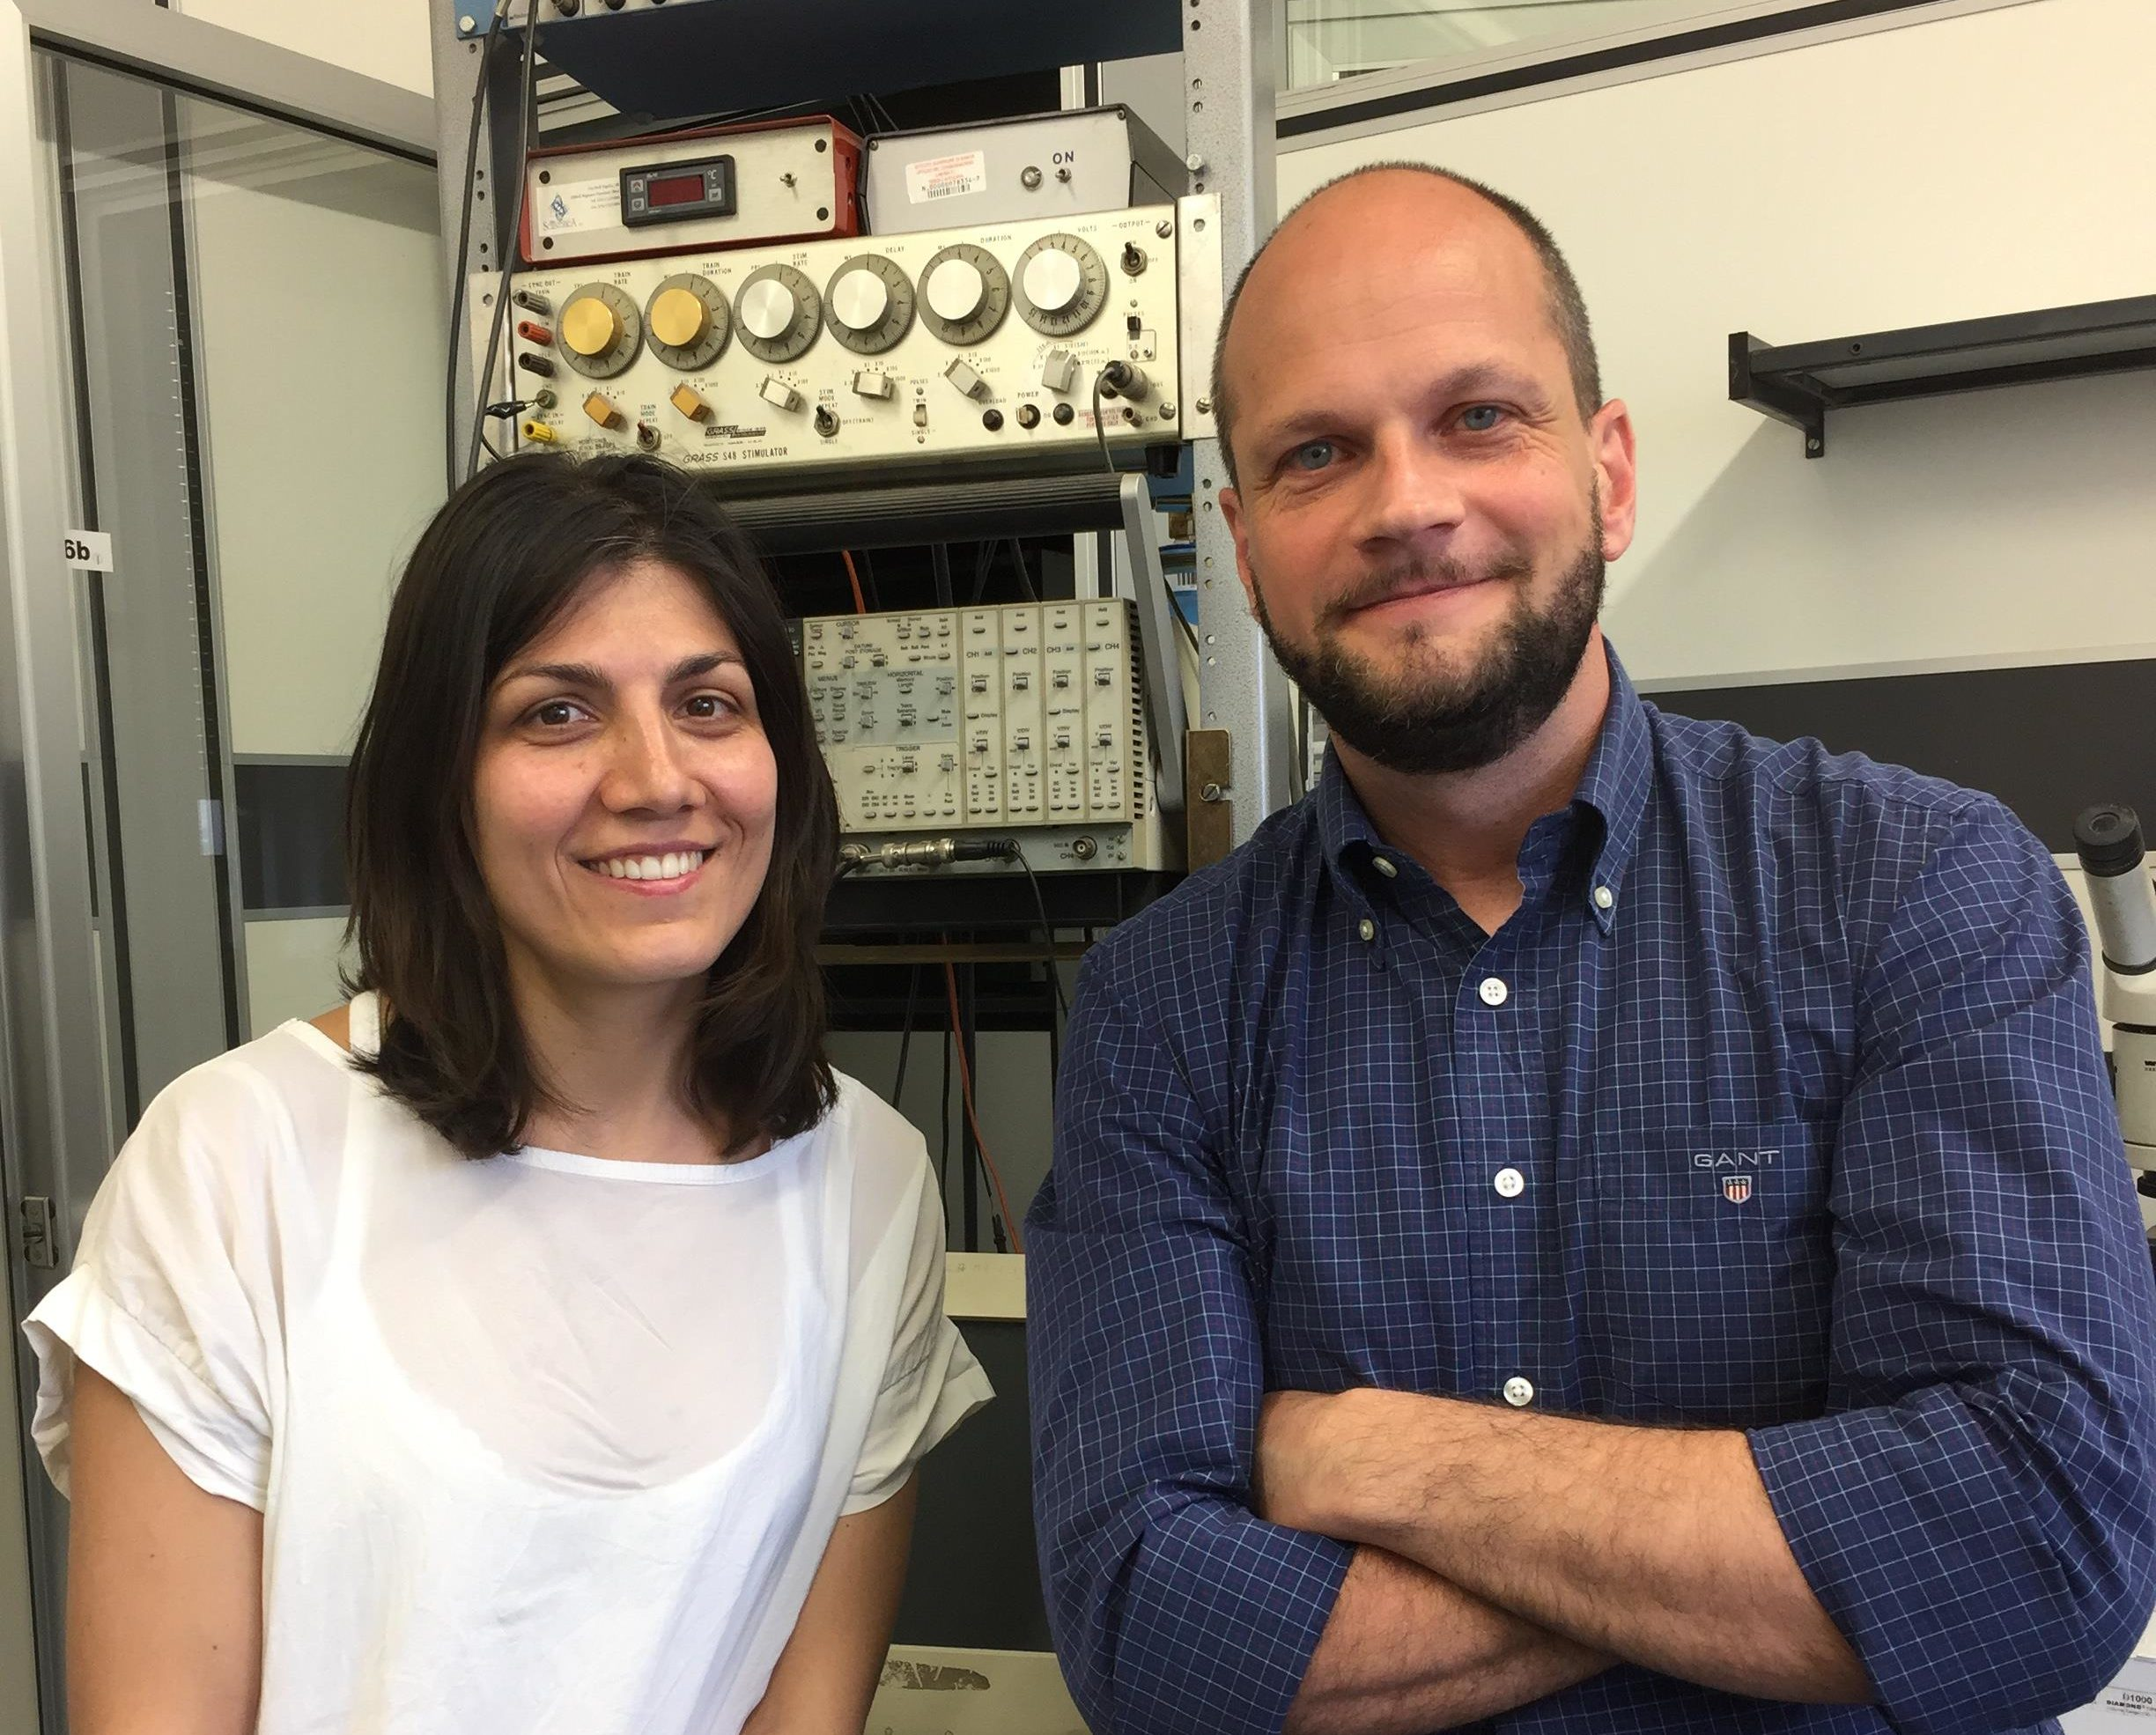 Antonella Borreca, PhD, and Alberto Martire, PhD